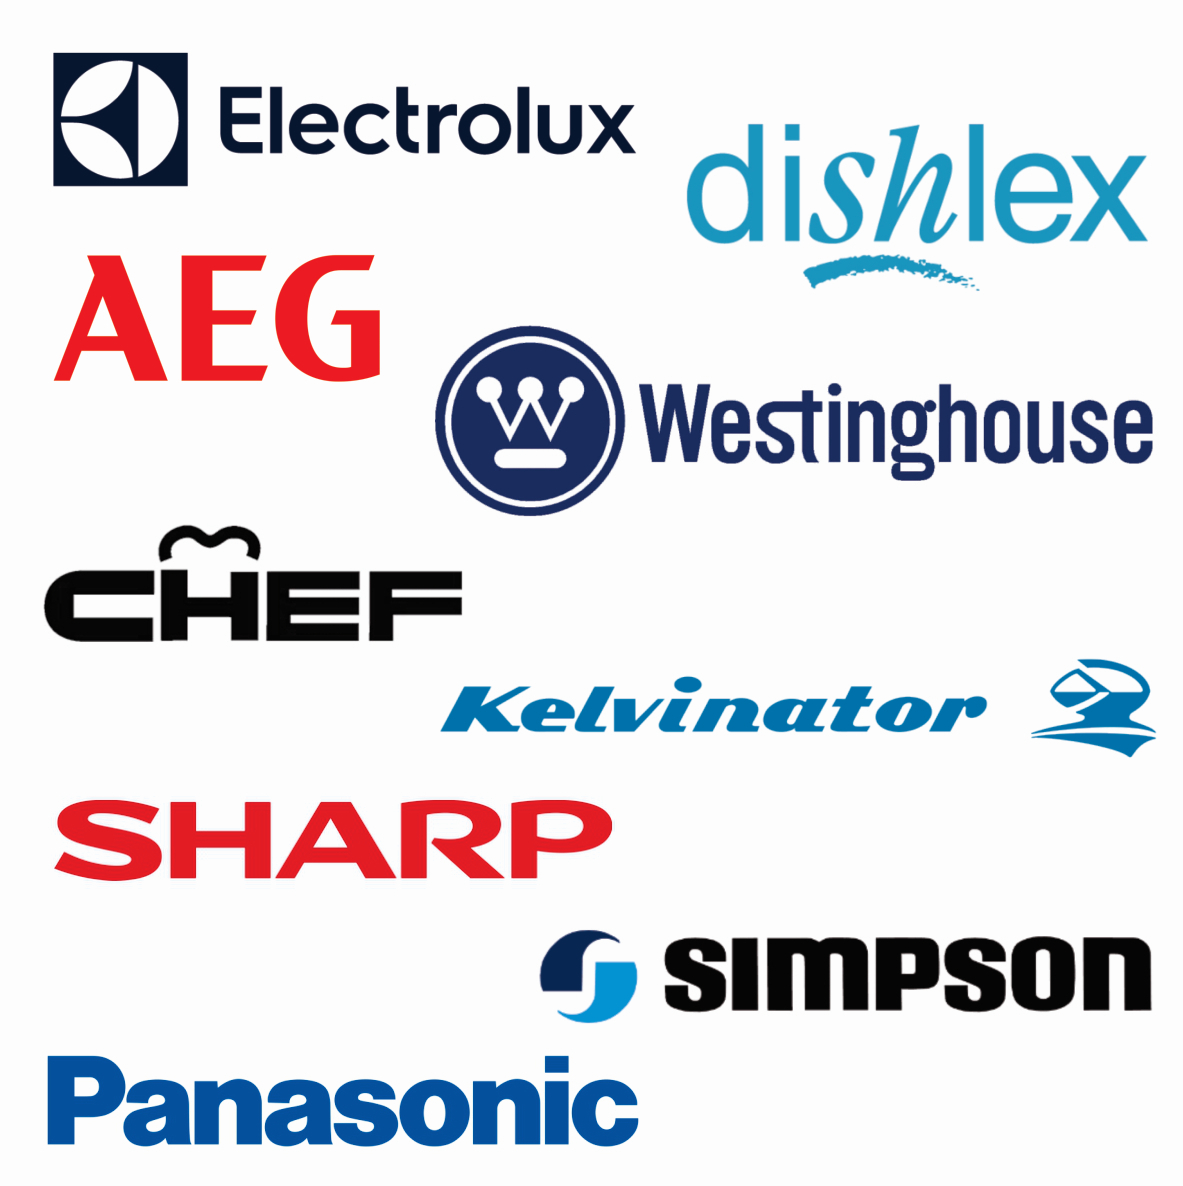 Appliance Spare Parts - AEG, CHEF, Dishlex, Electrolux, Kelvinator, Panasonic, Sharp, Simpson & Westinghouse